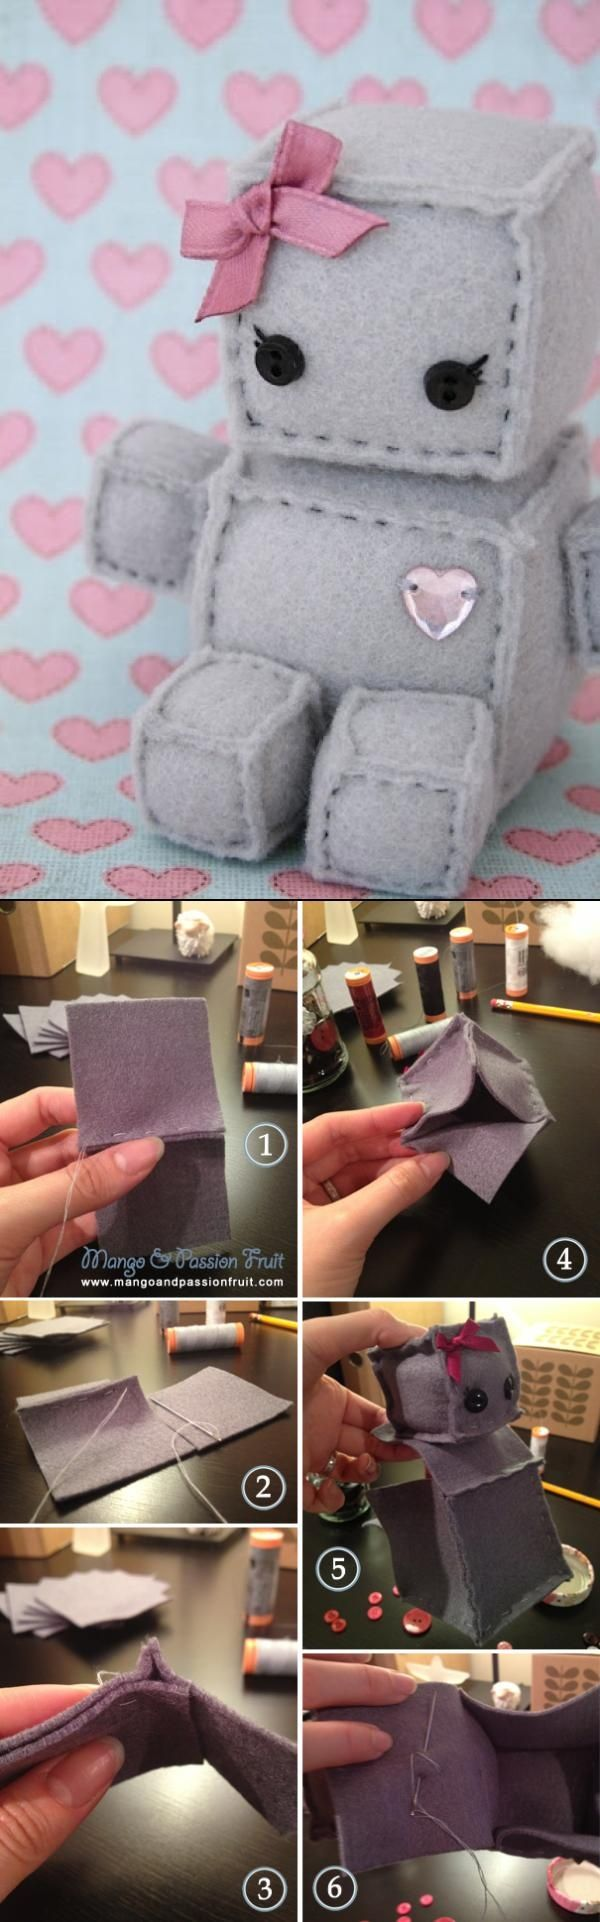 Ooh! I'd love to make this but I'd probably mess it up so bad!